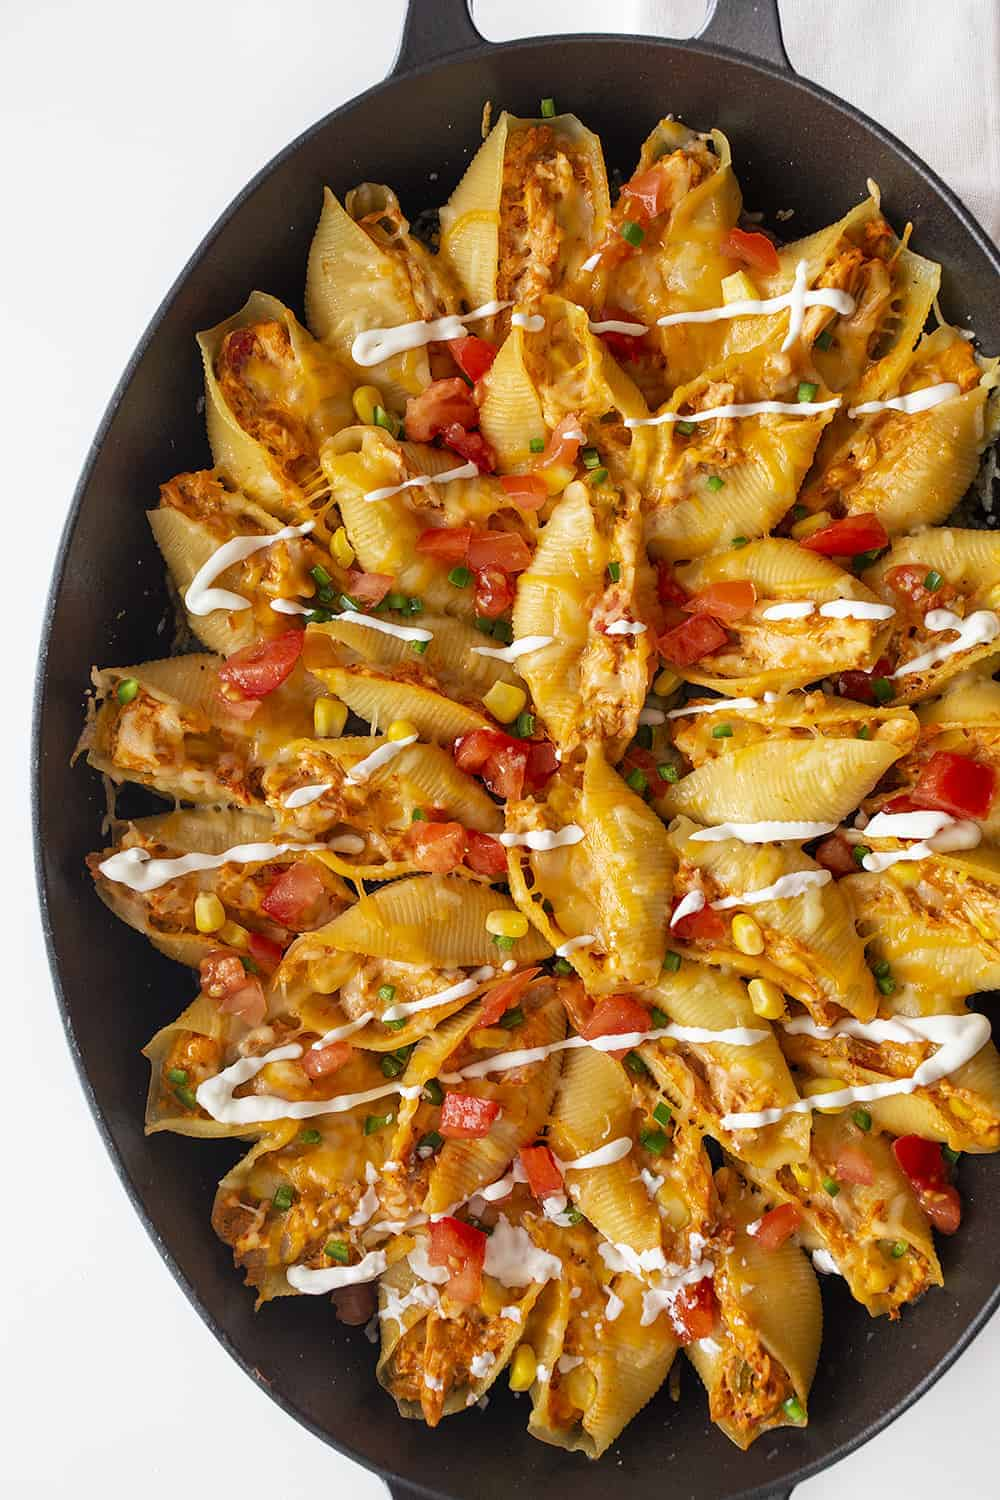 Overhead View is Chicken Taco Stuffed Shells in a Skillet